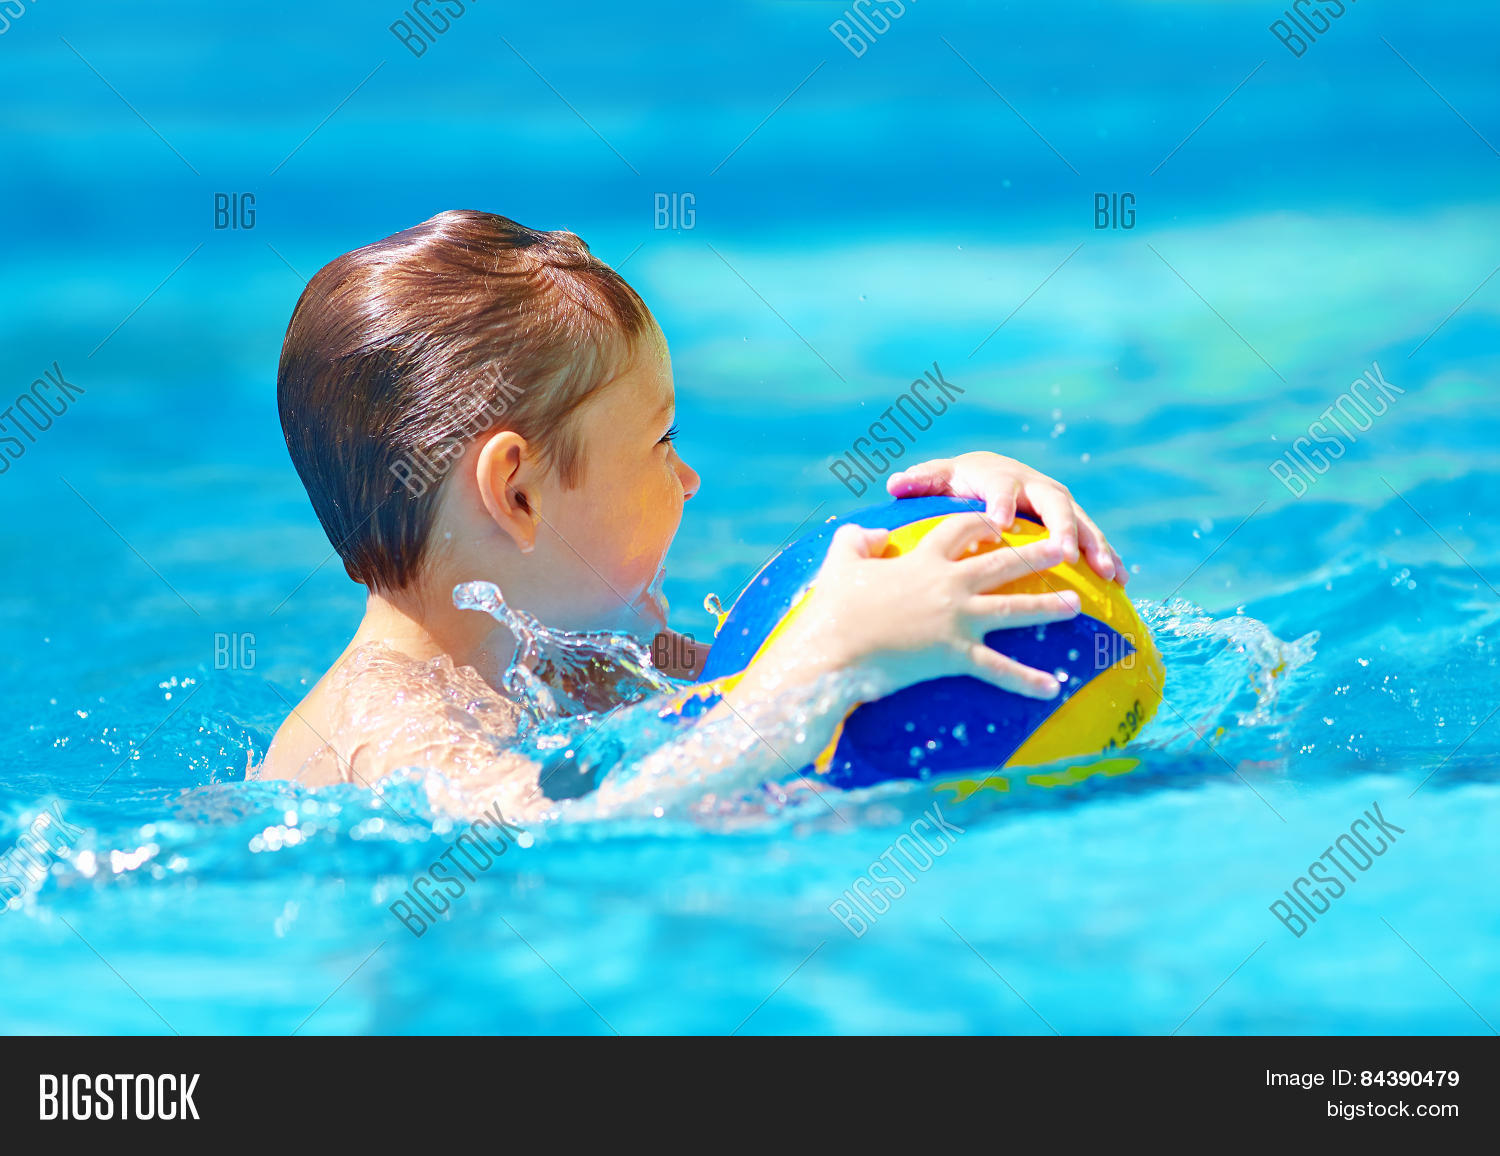 active,activity,aqua,baby,ball,boy,child,childhood,class,colorful,cute,day,education,enjoy,fun,game,happy,healthy,hobby,joy,joyful,kid,kids sports,learn,leisure,lesson,life,lifestyle,outdoor,people,person,play,playful,polo,pool,pool water,recreate,recreation,smile,splash,sport,summer,swim,teach,vacation,water,waterpolo,watersport,water sports,wet,young